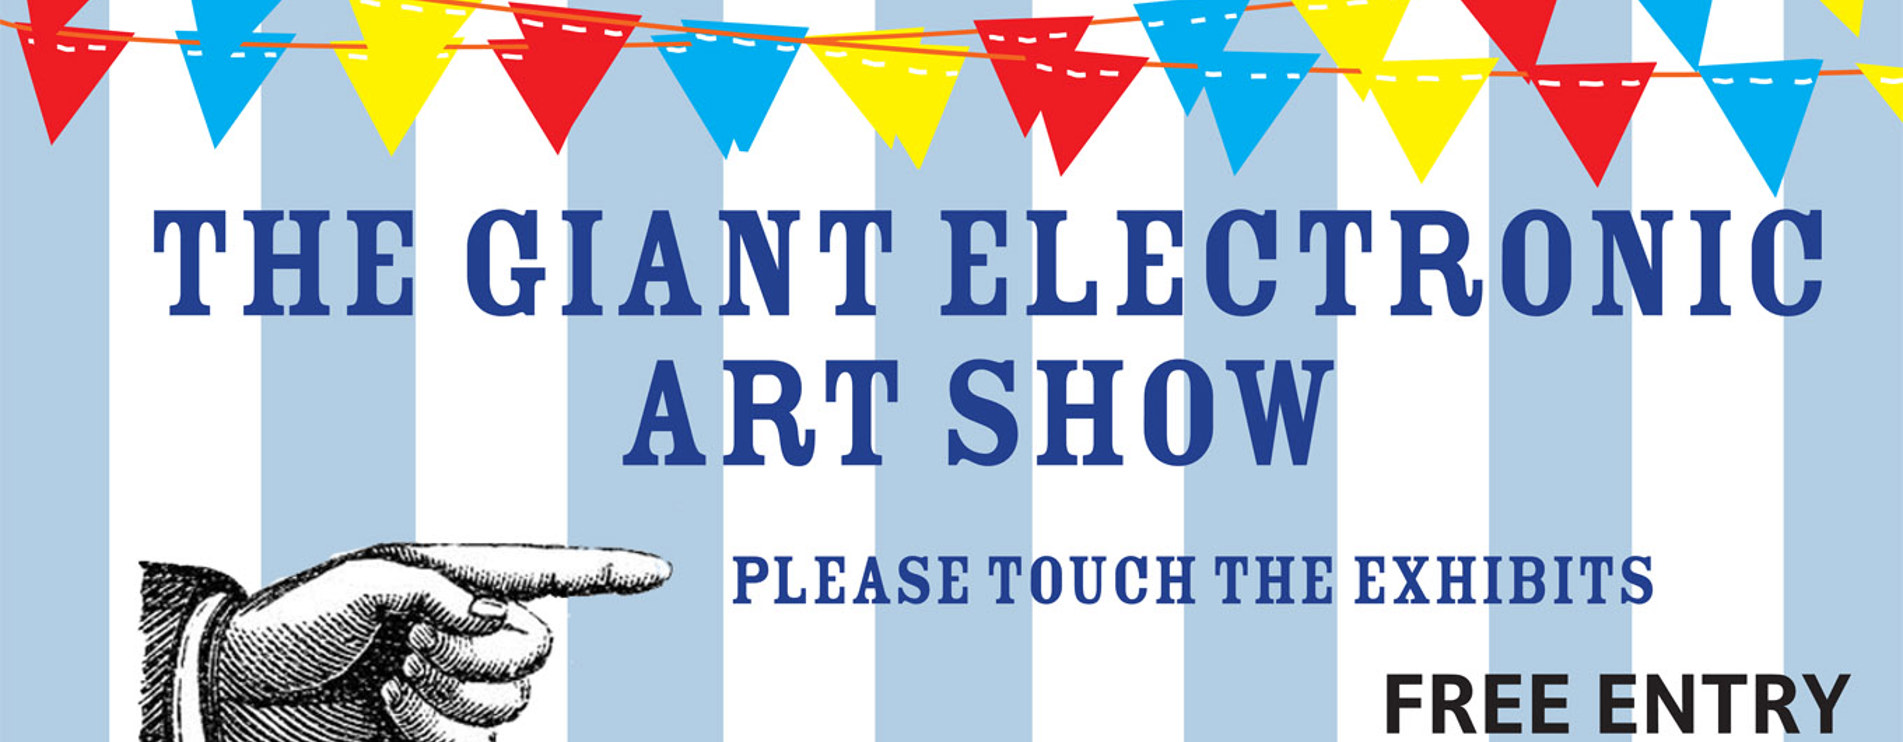 The Giant Electronic Art Show